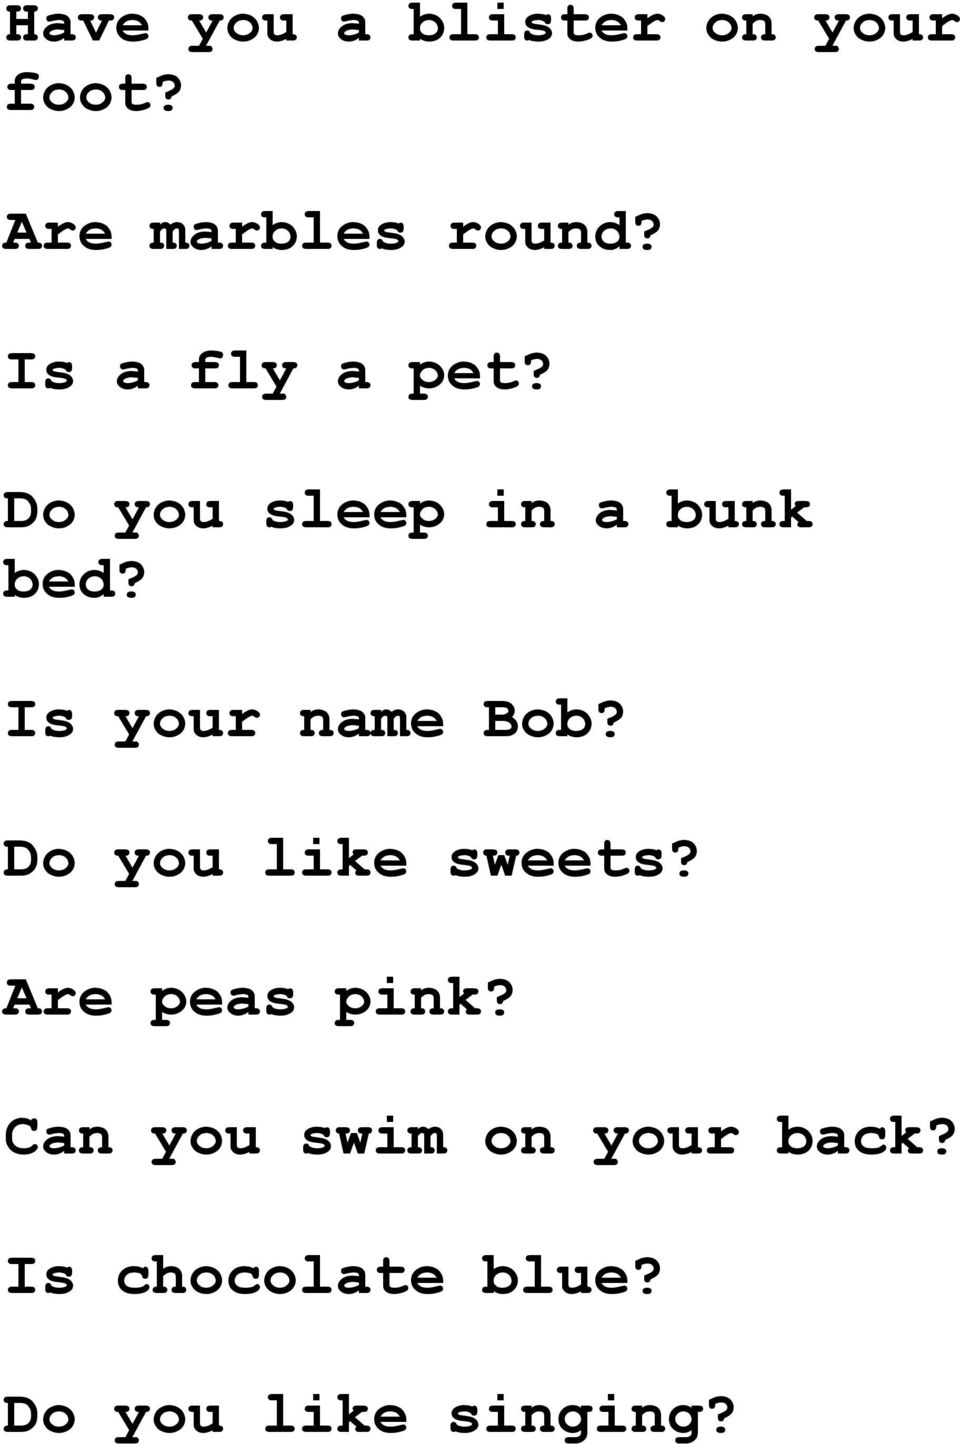 Is your name Bob? Do you like sweets? Are peas pink?